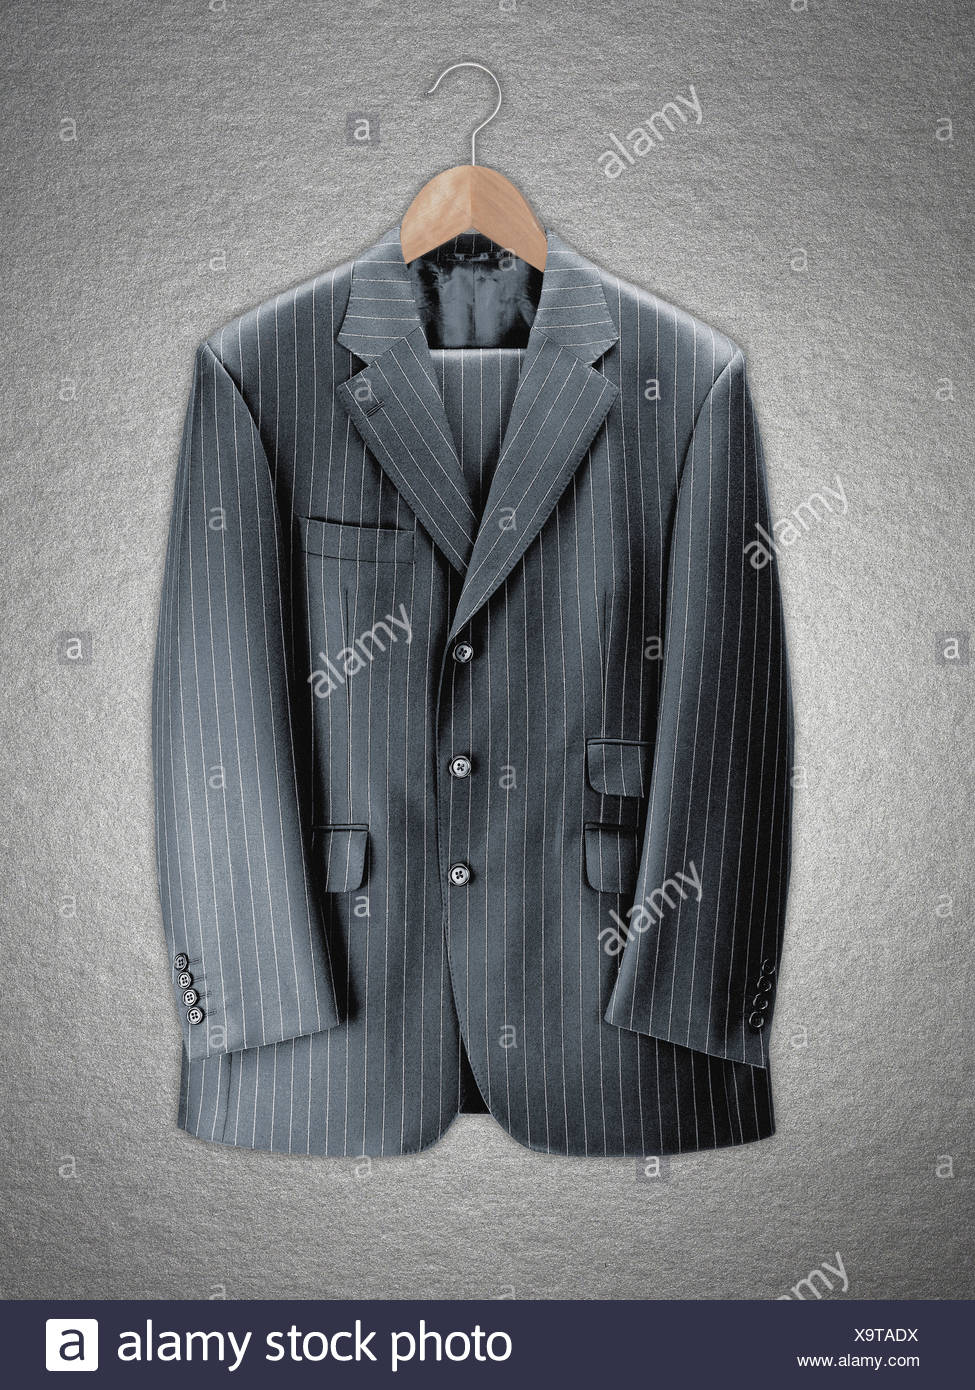 Business suit on coat hanger - Stock Image